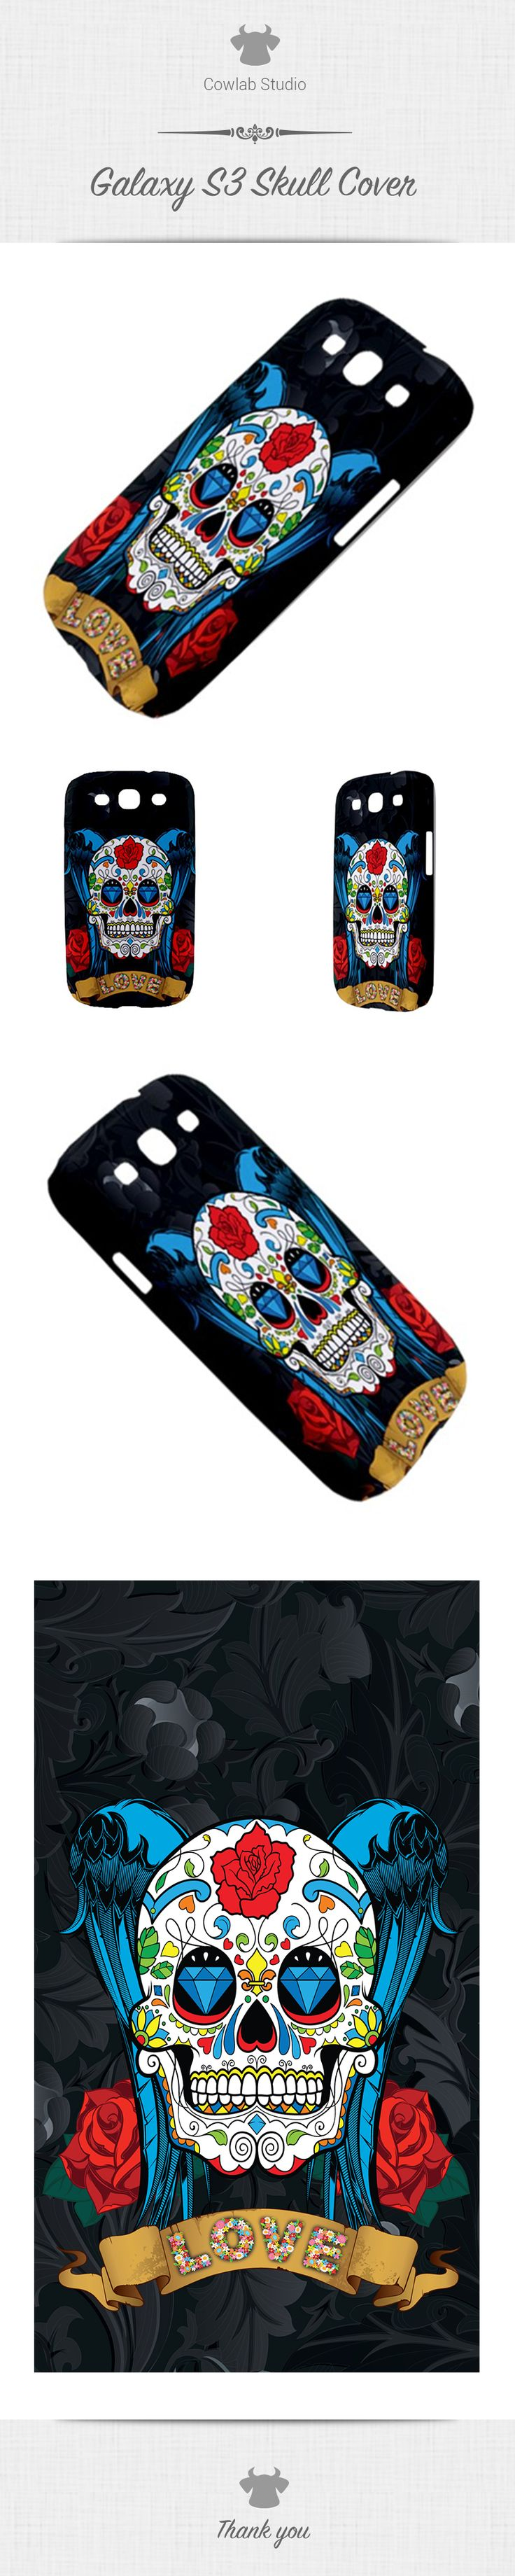 Samsung Galaxy S3 Skull back cover